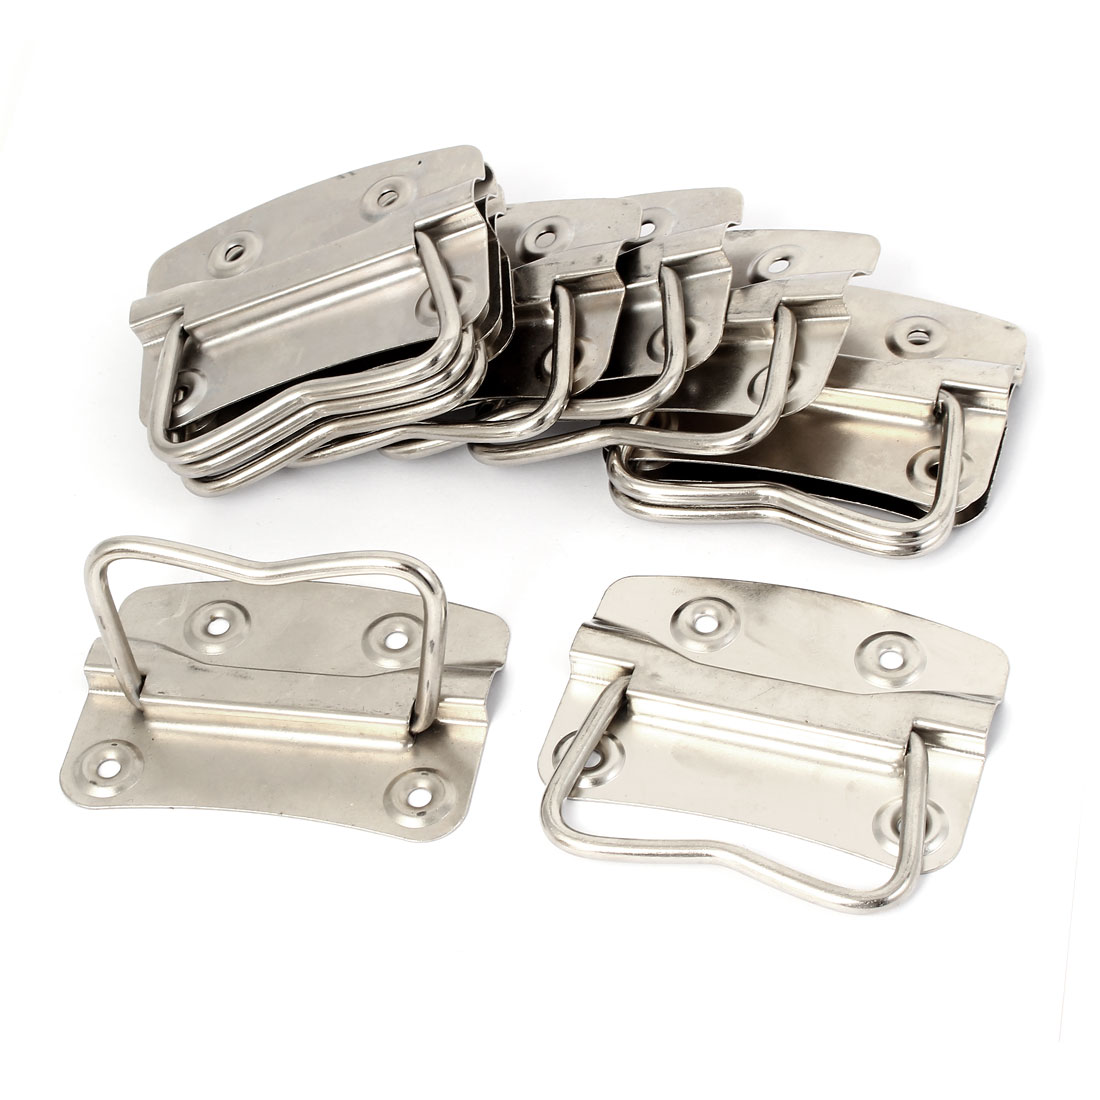 "Metal Flush Mounted Type Box Pulls Tool Chest Trunk Handles 3.5"" Length 10pcs"